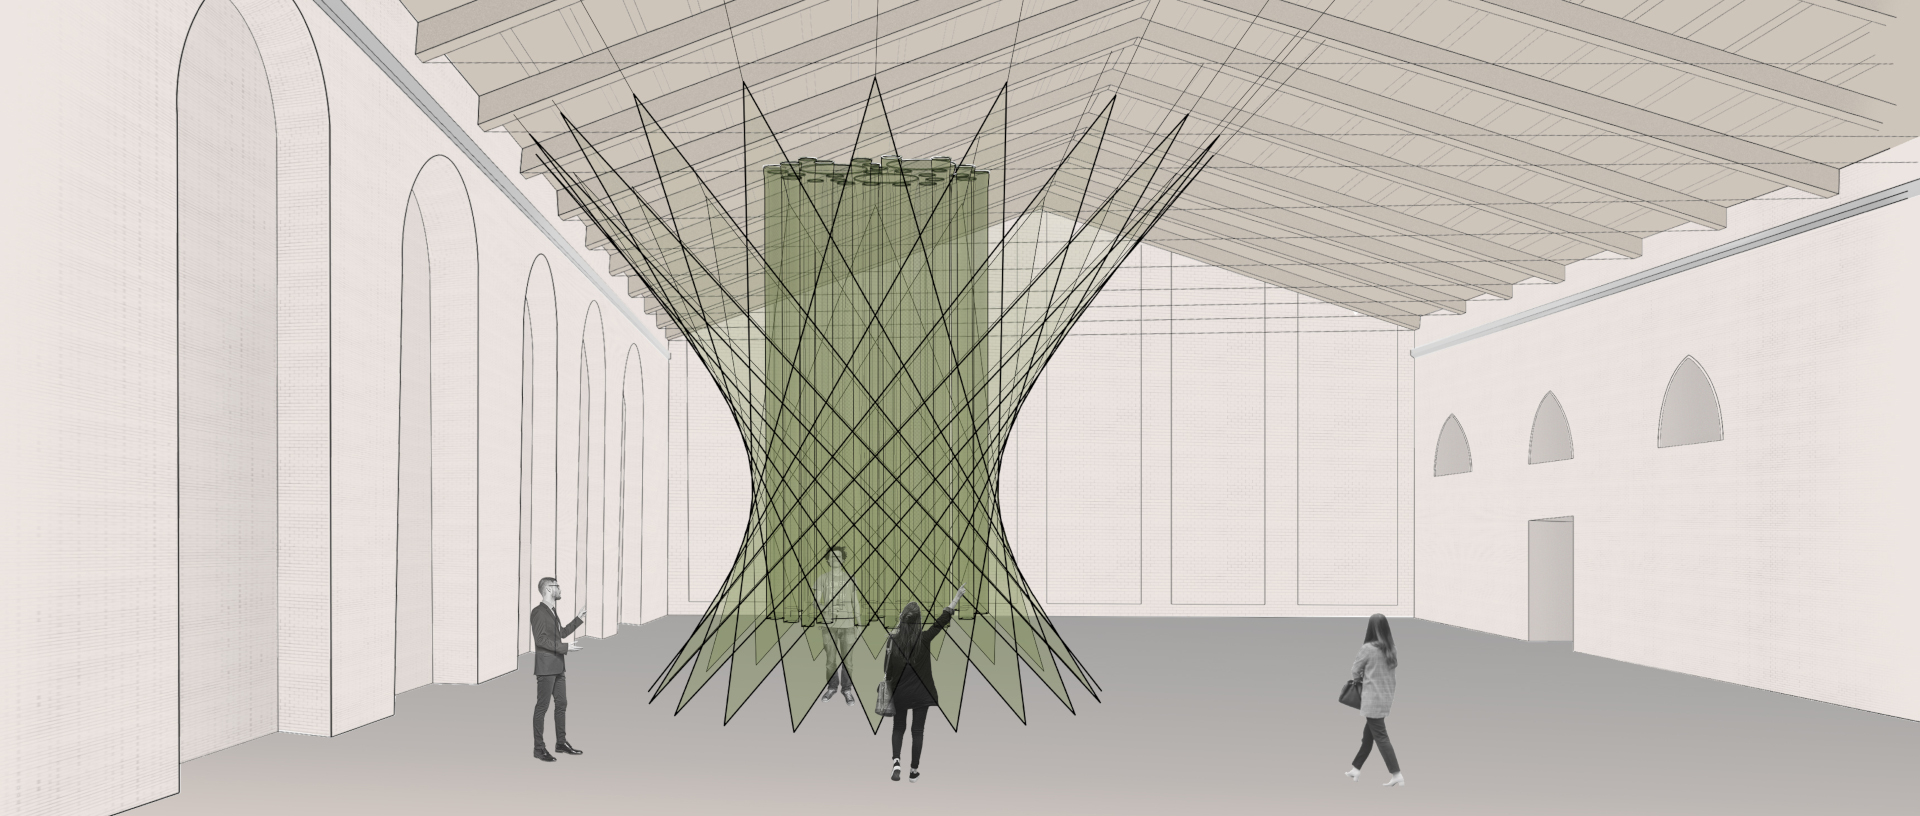 Concept sketch of the installation